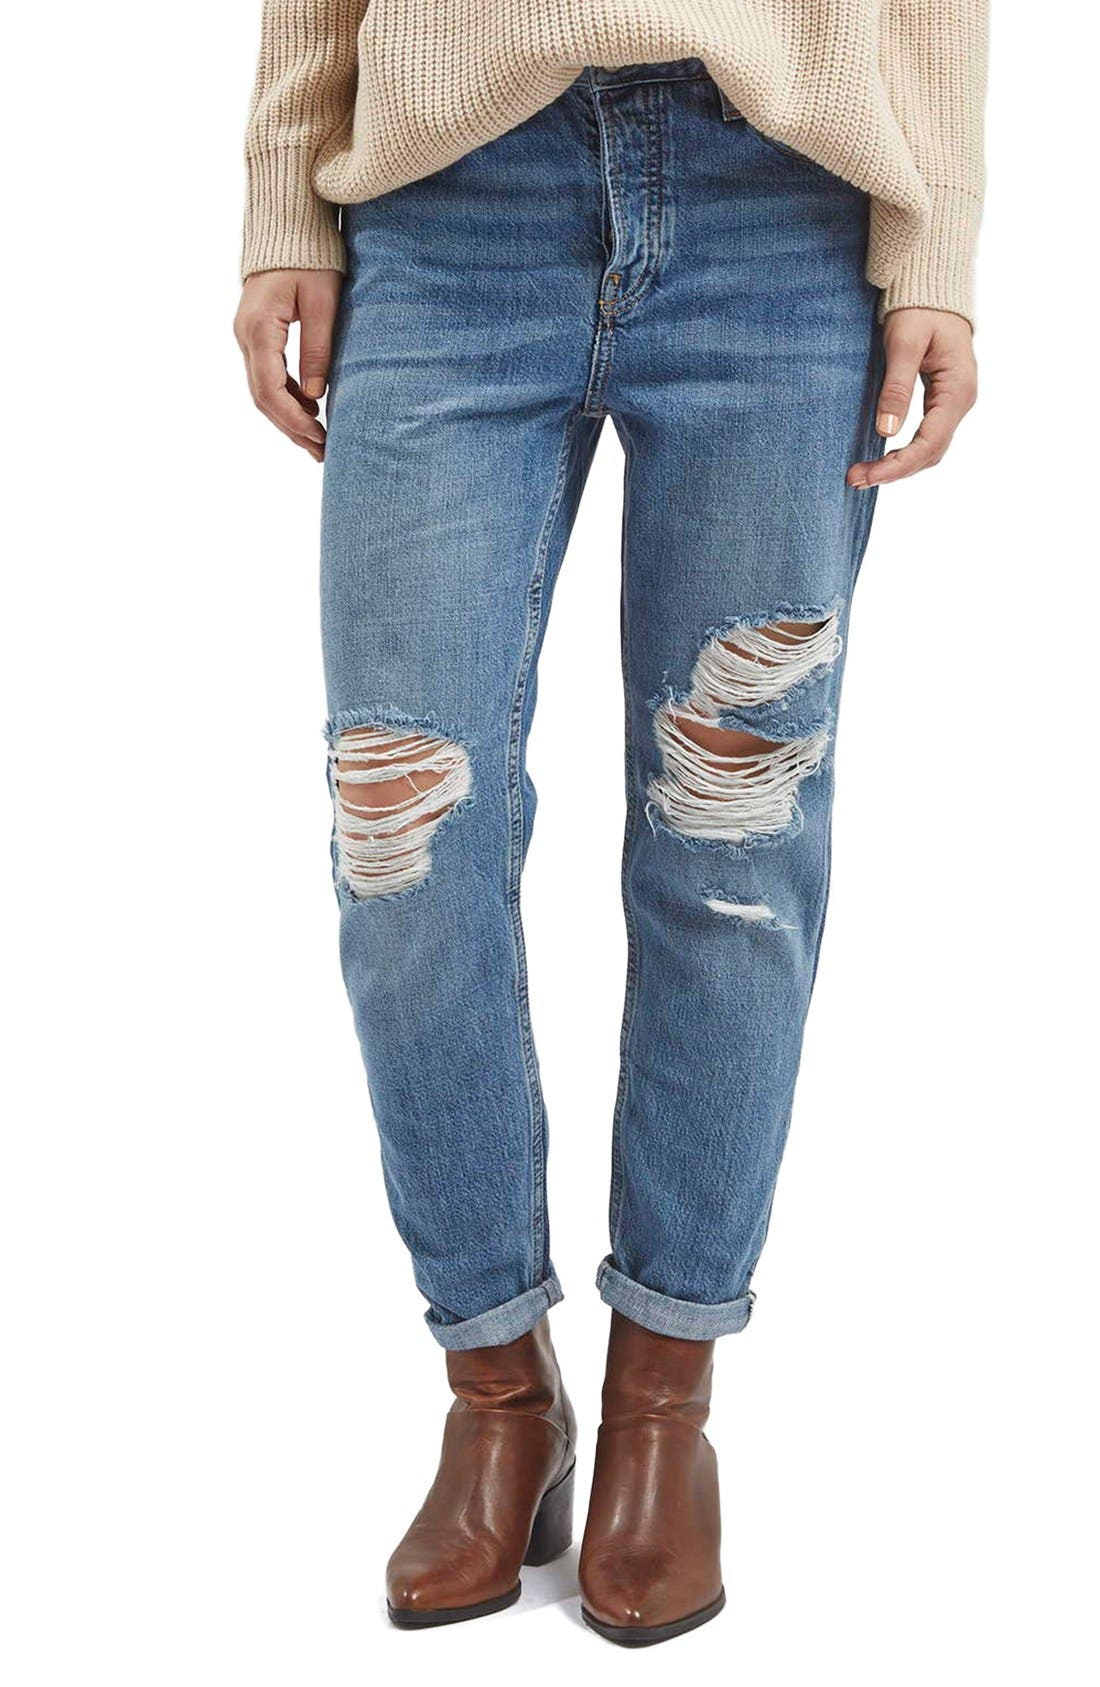 Alternate Image 1 Selected - Topshop Moto 'Hayden' Ripped Boyfriend Jeans (Blue)